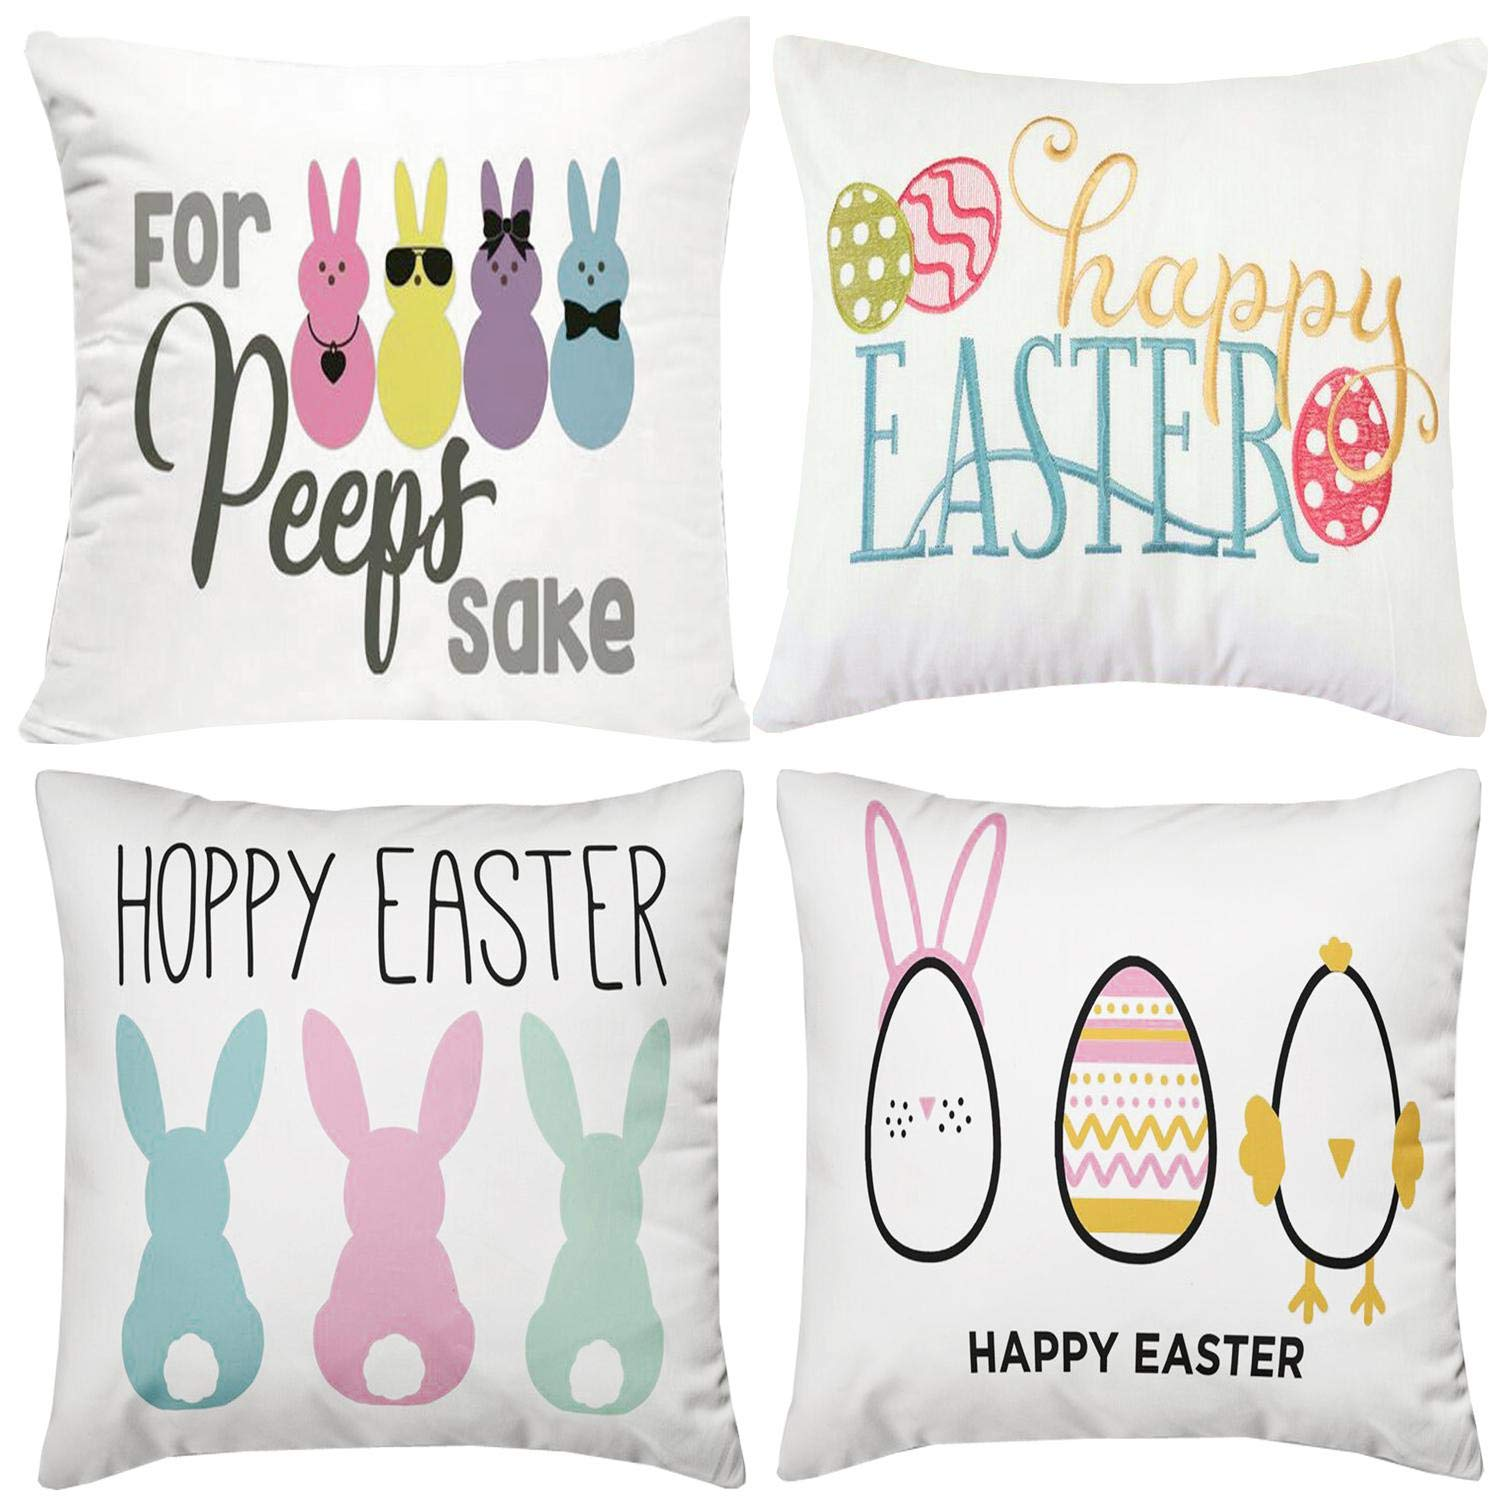 Buy Set Of 4 Happy Easter Day Throw Pillow Covers 18 X 18 Inch Munzong Cotton Linen Double Side Easter Peep Bunny Easter Egg Pillowcases Square Cushion Covers For Spring Holiday Decor